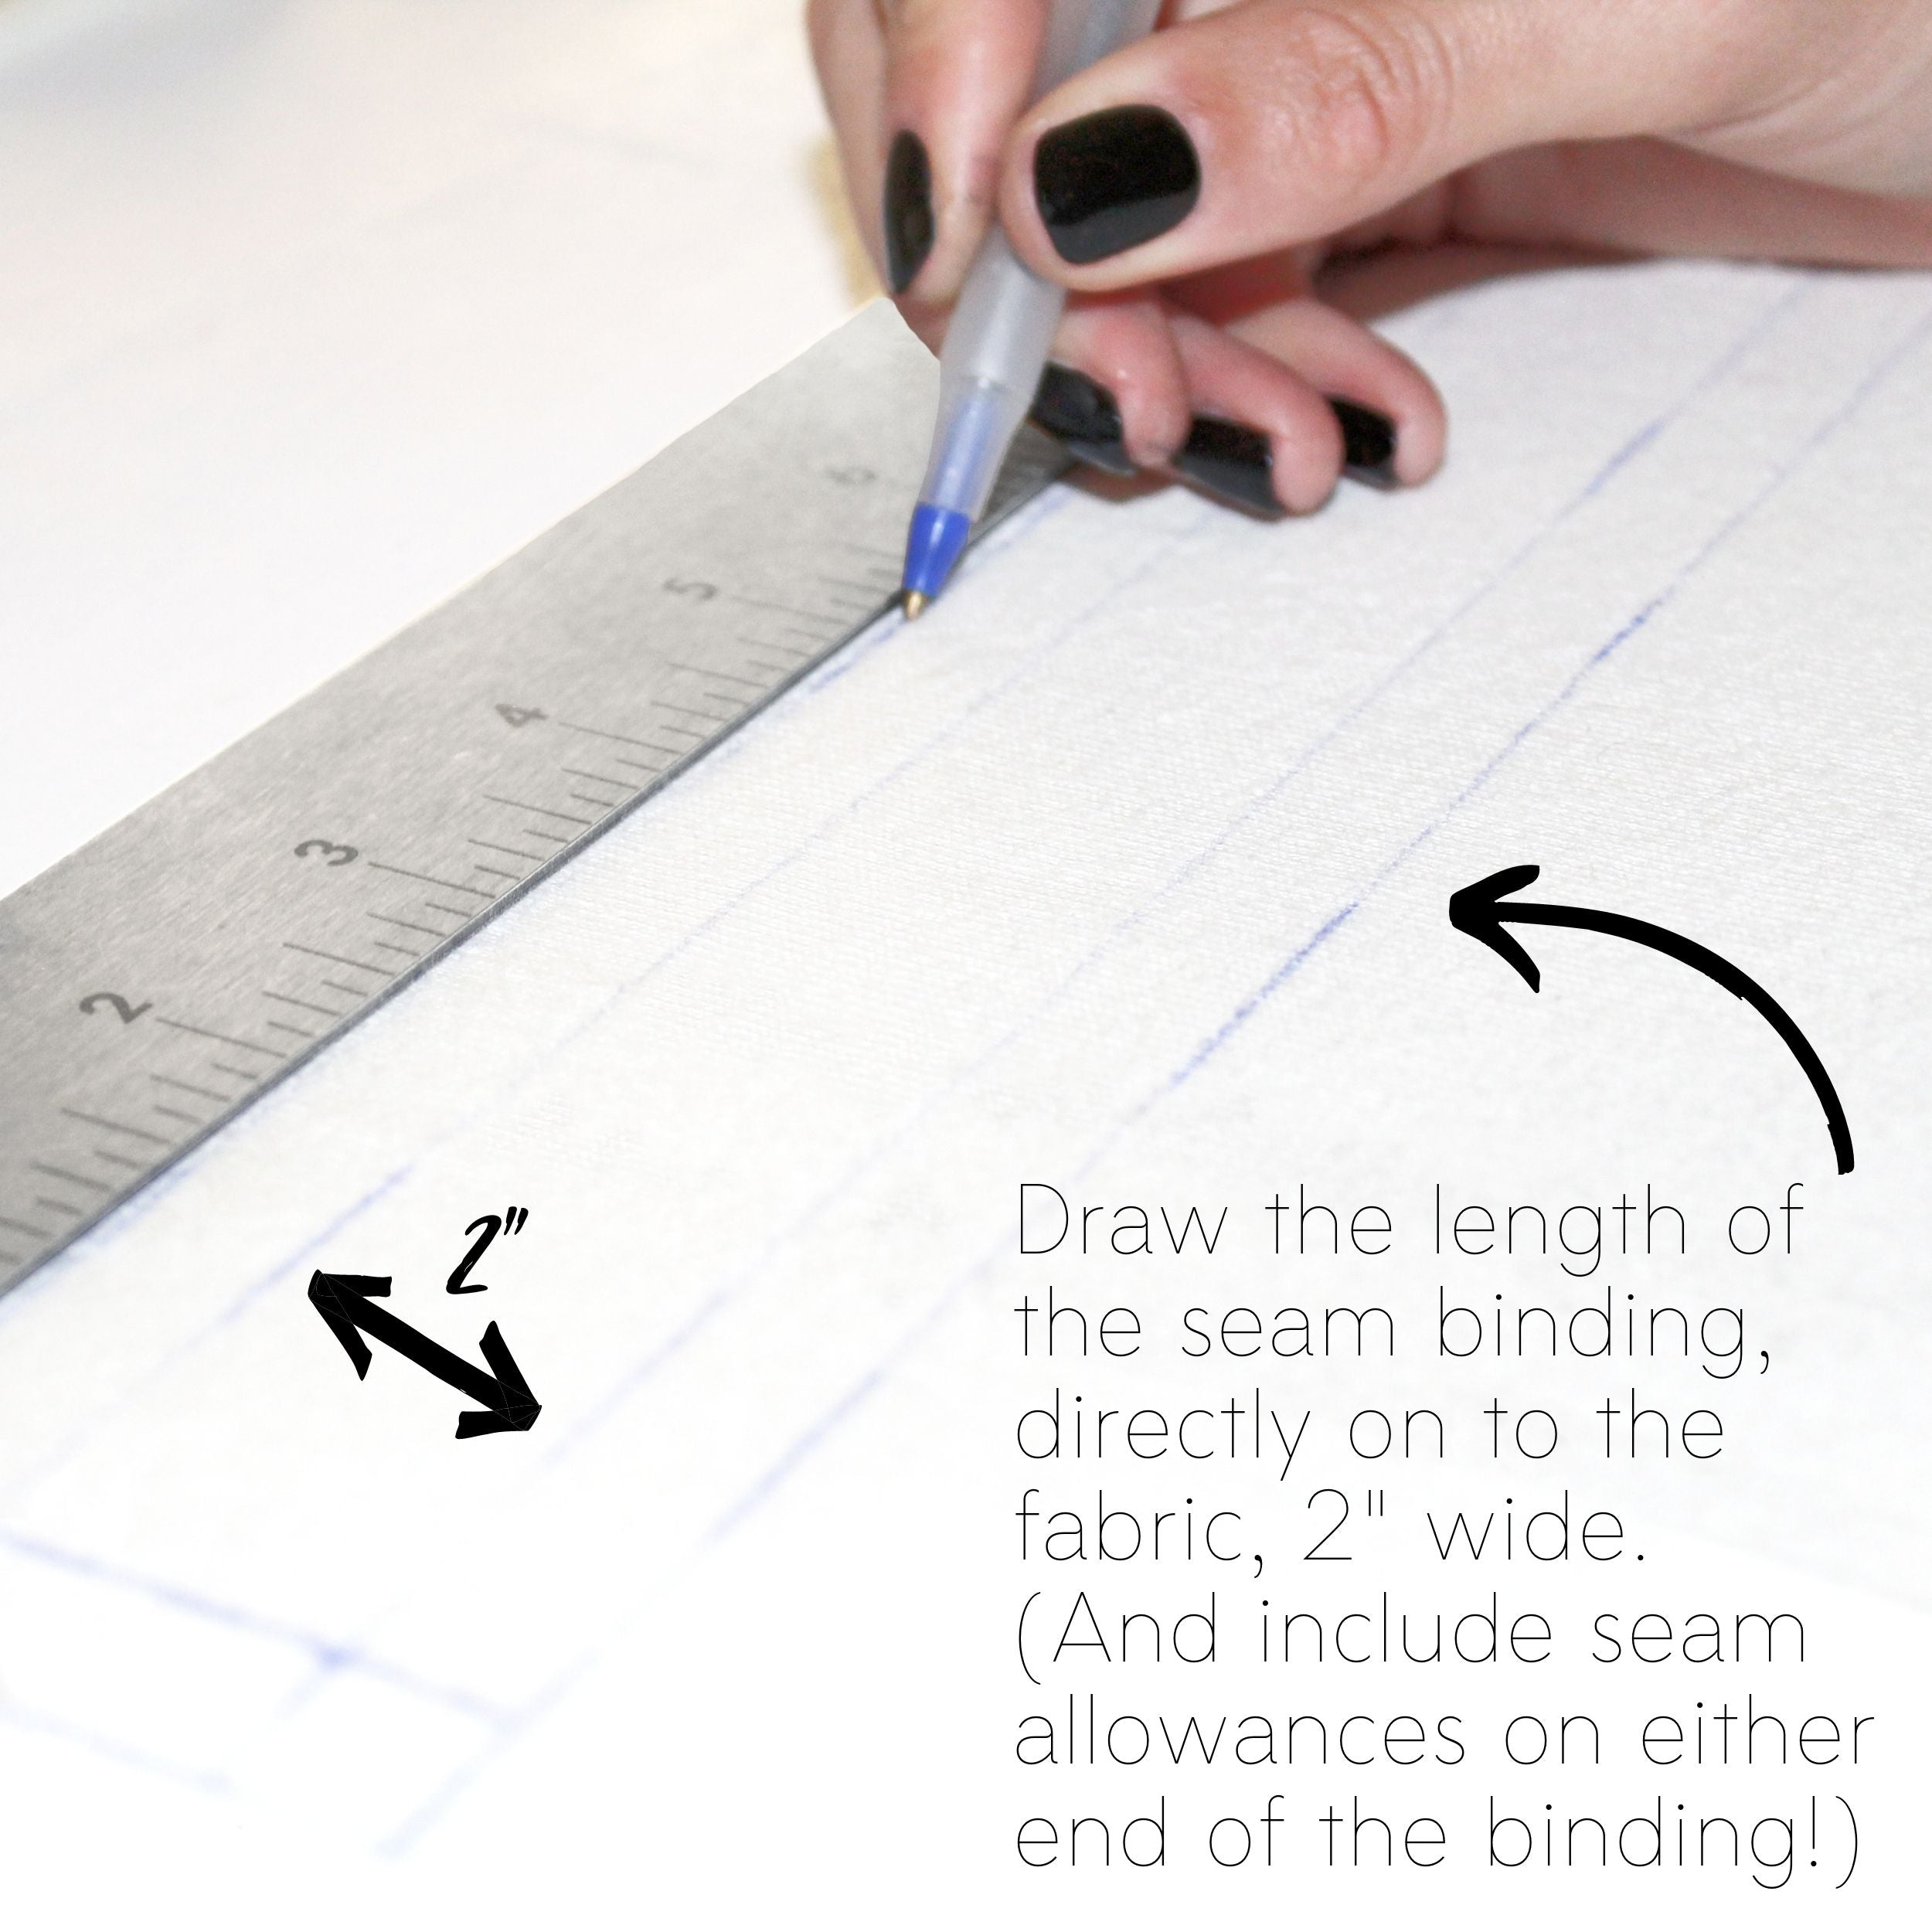 How To Sew A Knit Seam Binding Sewing Tutorial: Step 1.1